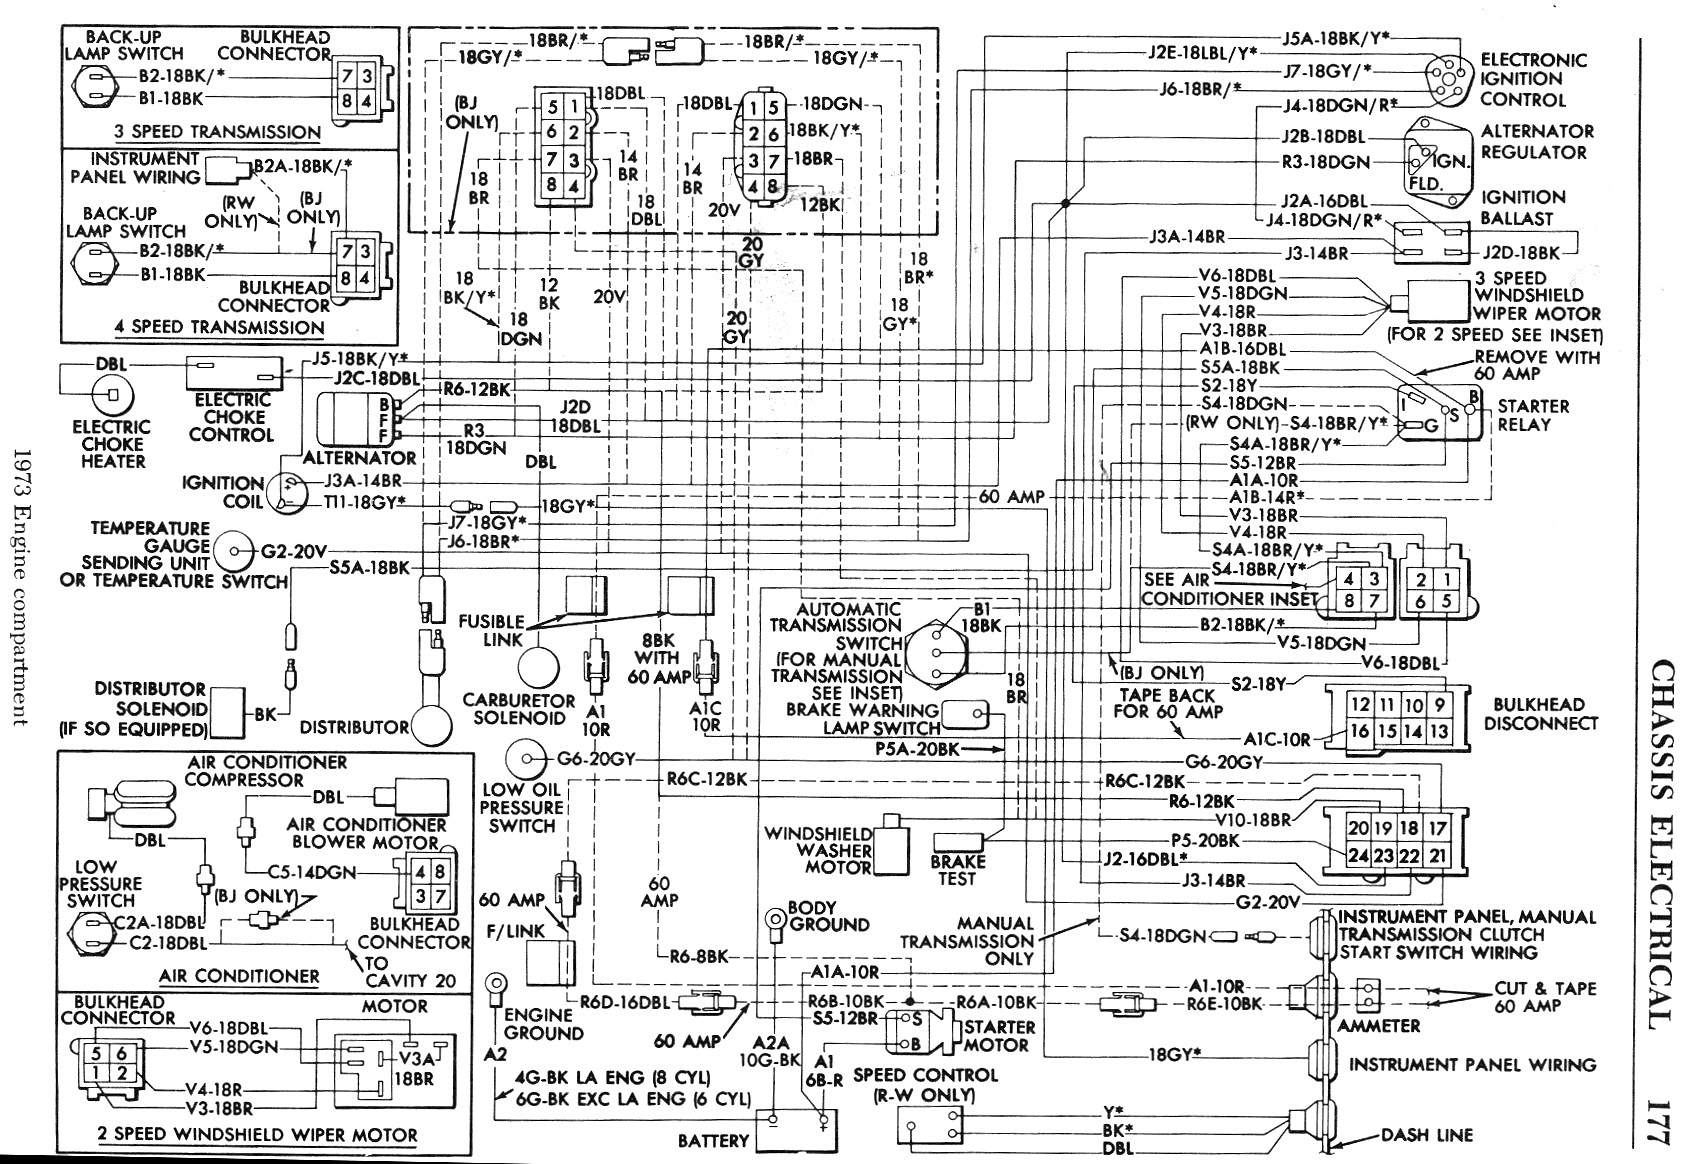 1973 dodge charger ignition wiring diagram 95 mustang gt cooling fan dart alternator get free image